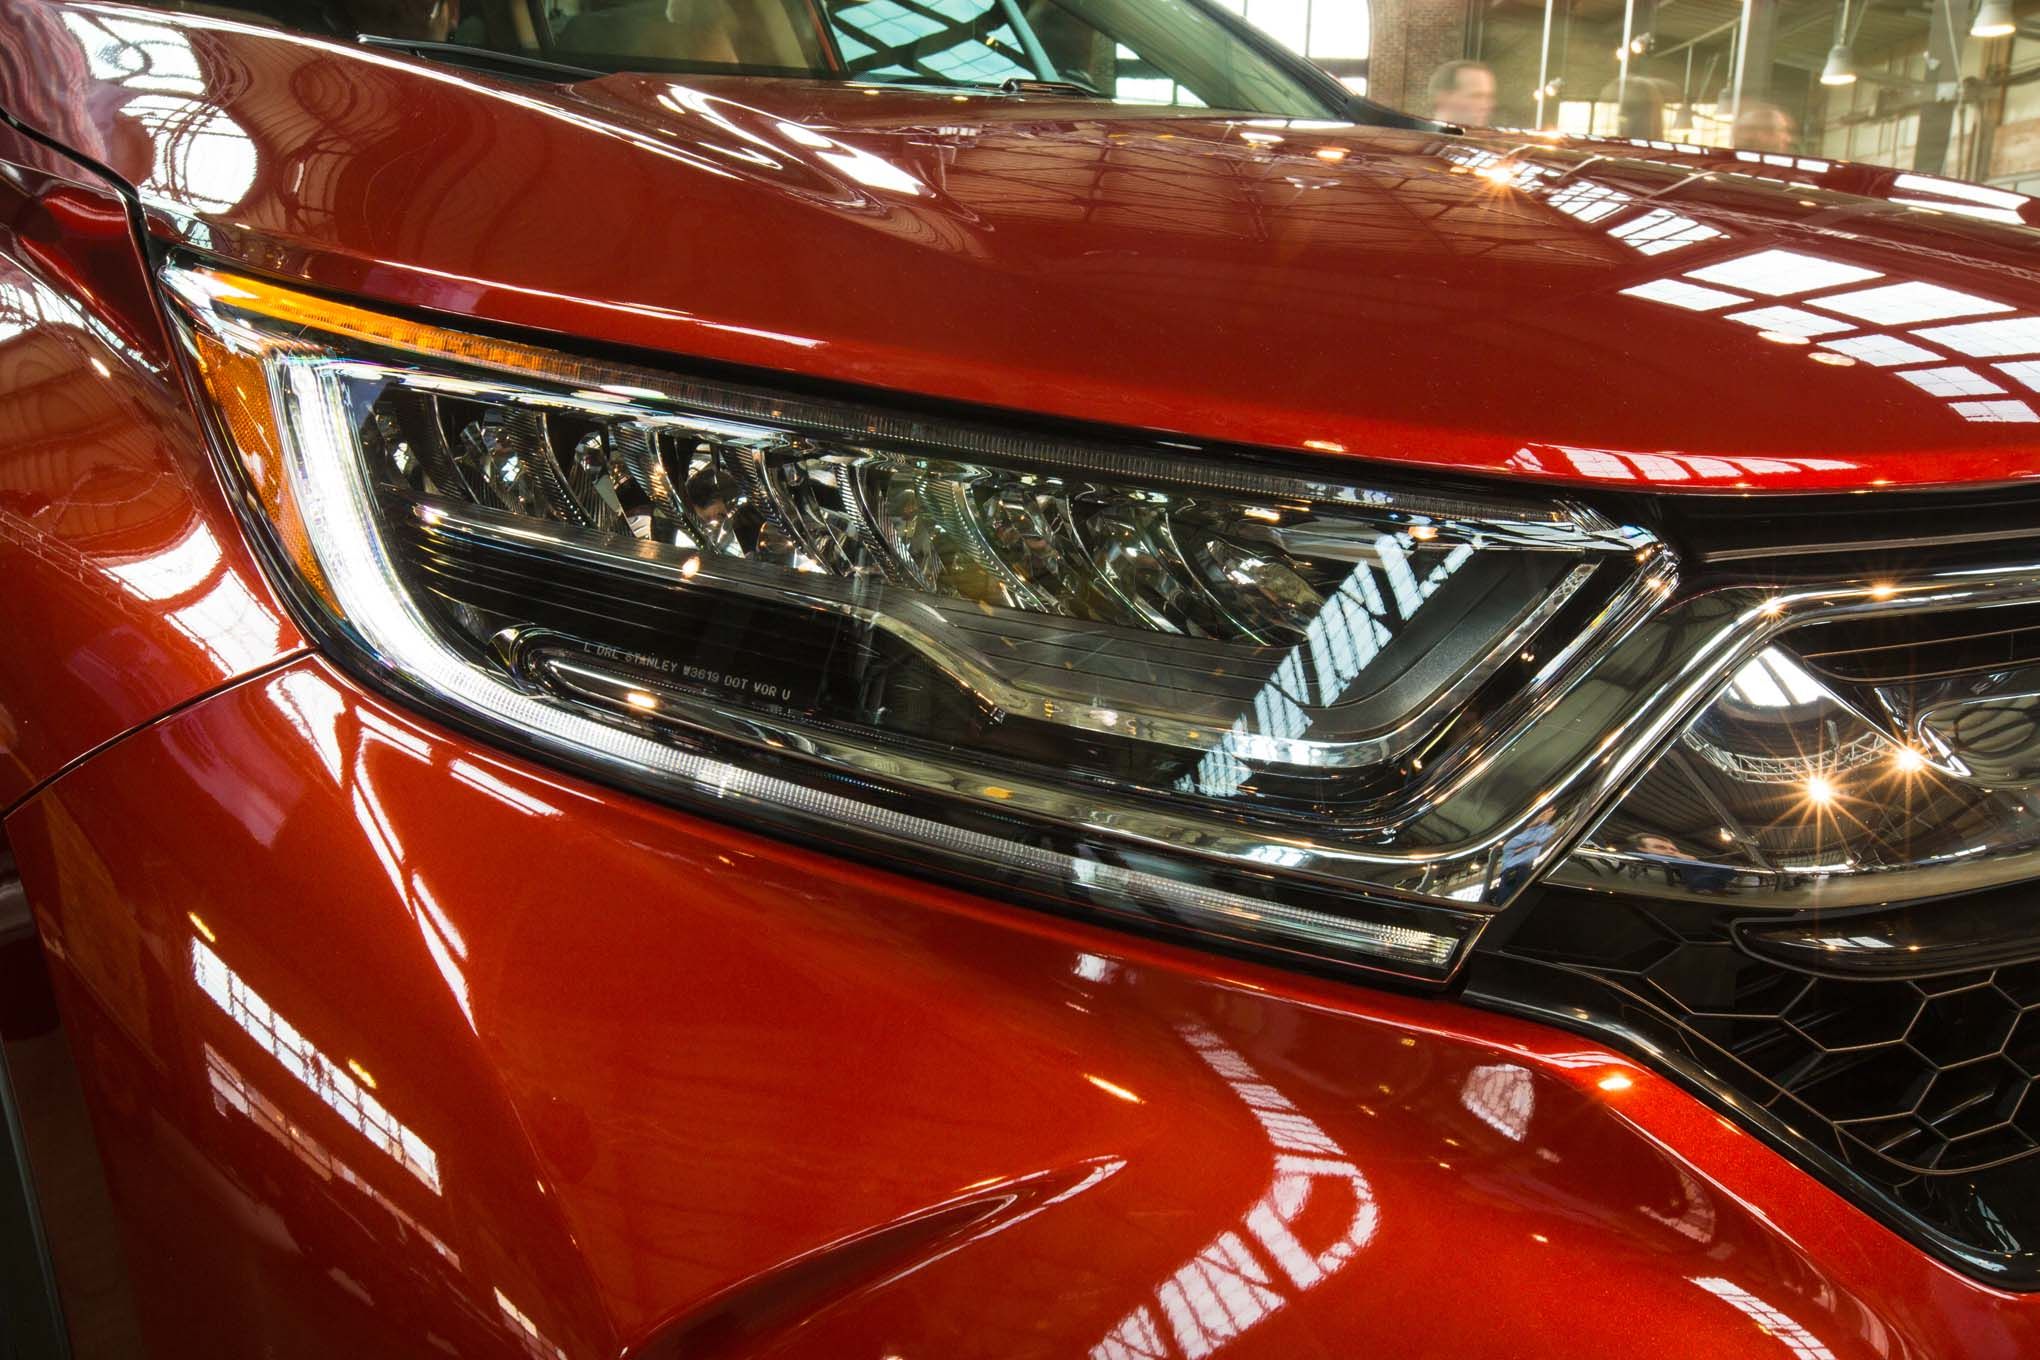 2017-honda-cr-v-headlamp